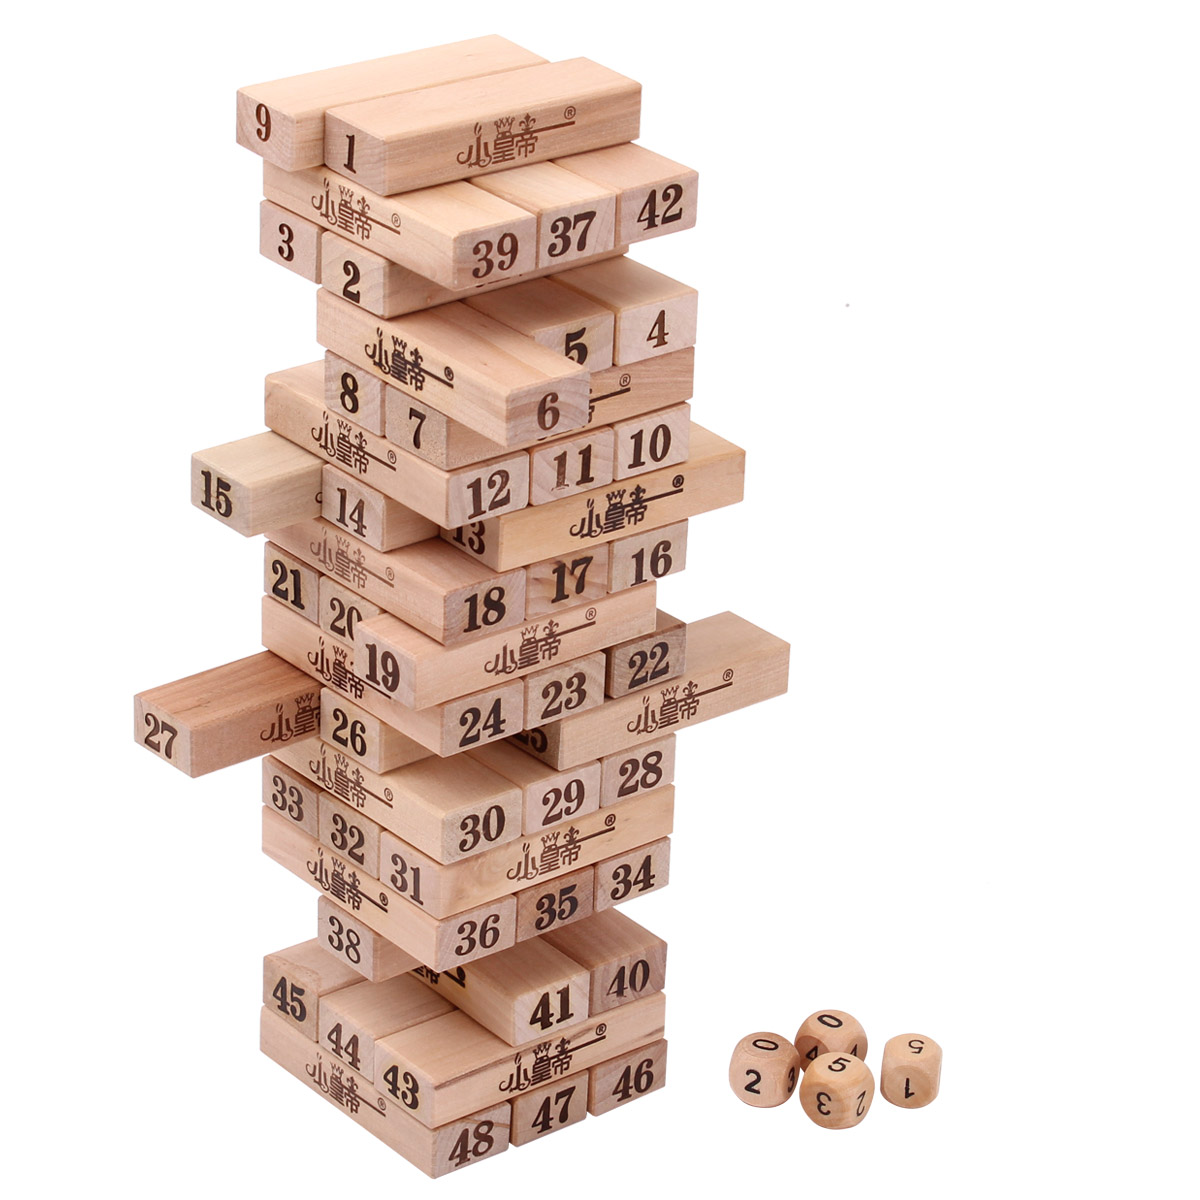 TLER wooden stacking stack-stack high stack of stacks of wooden building blocks children building blocks toys